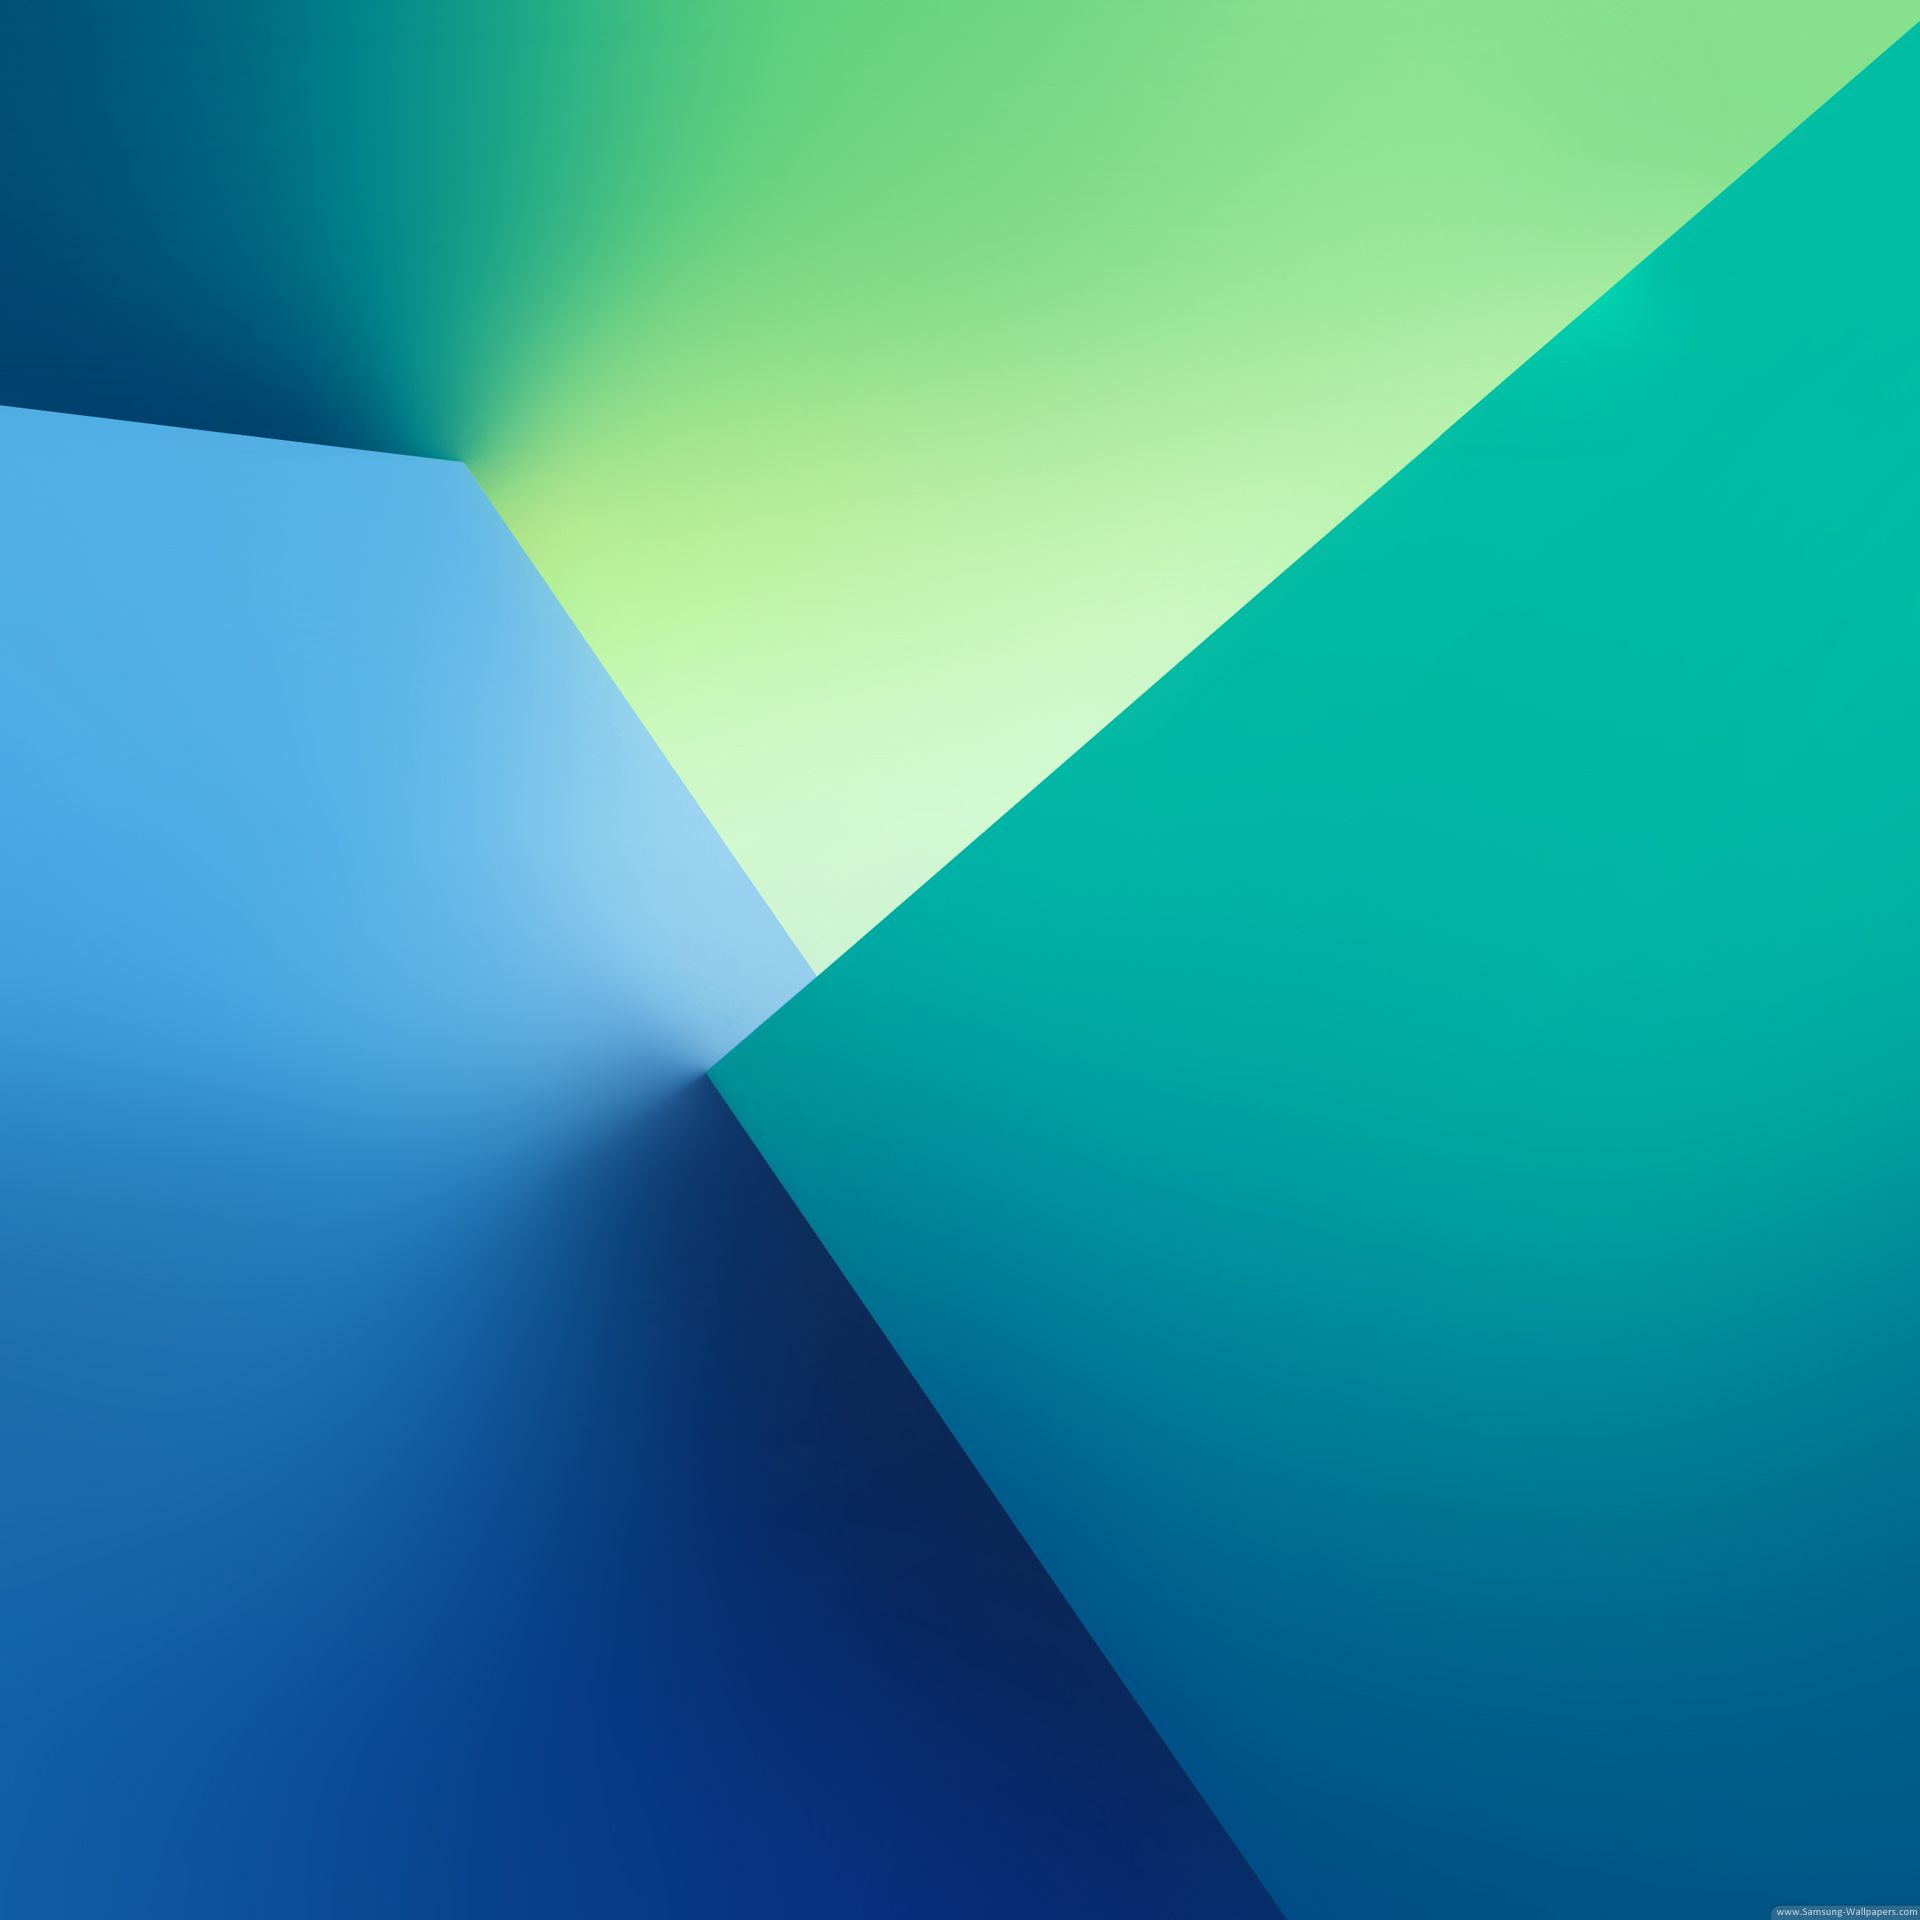 Samsung Galaxy Tab 2016 Official Stock 1920x1920 Wallpaper Hd Samsung Wallpapers Abstracto Texturas Proyectos